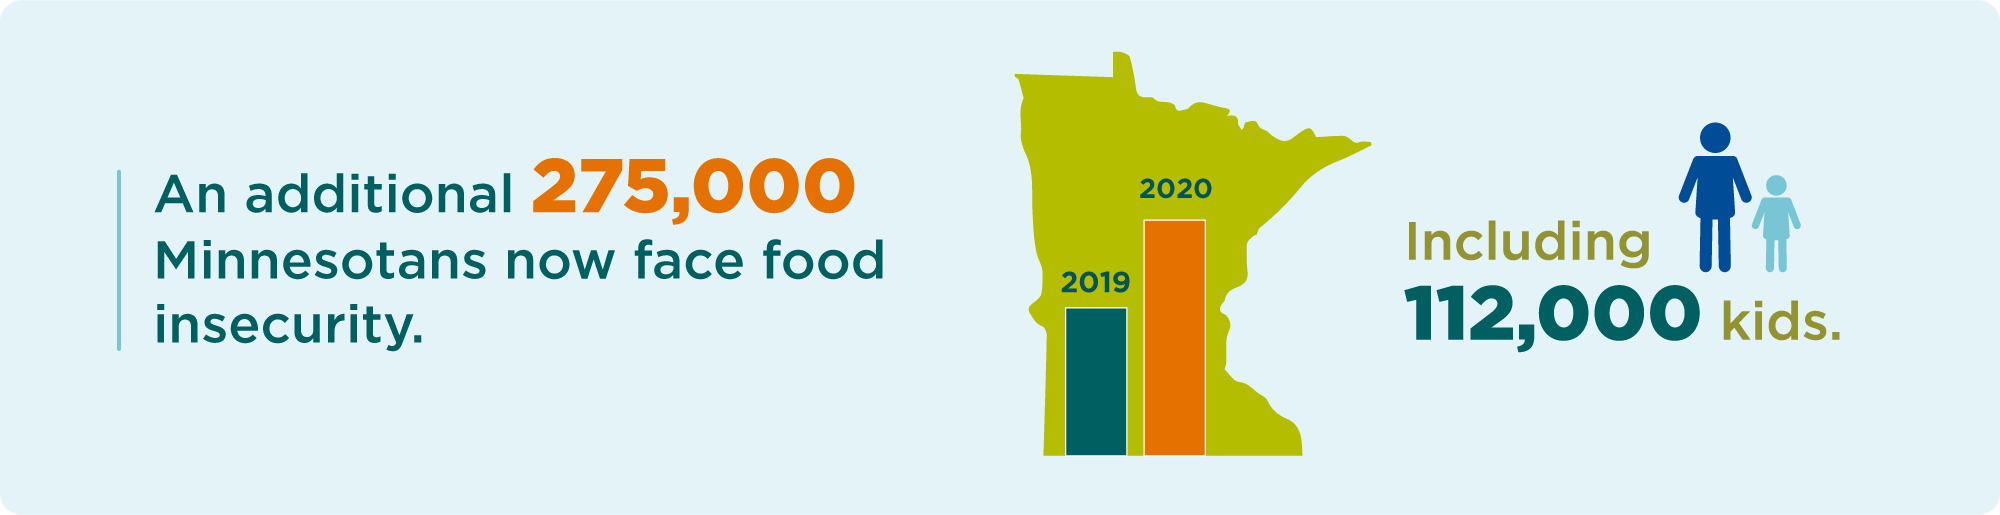 270,000 Minnesotans and 112,000 kids are now facing hunger